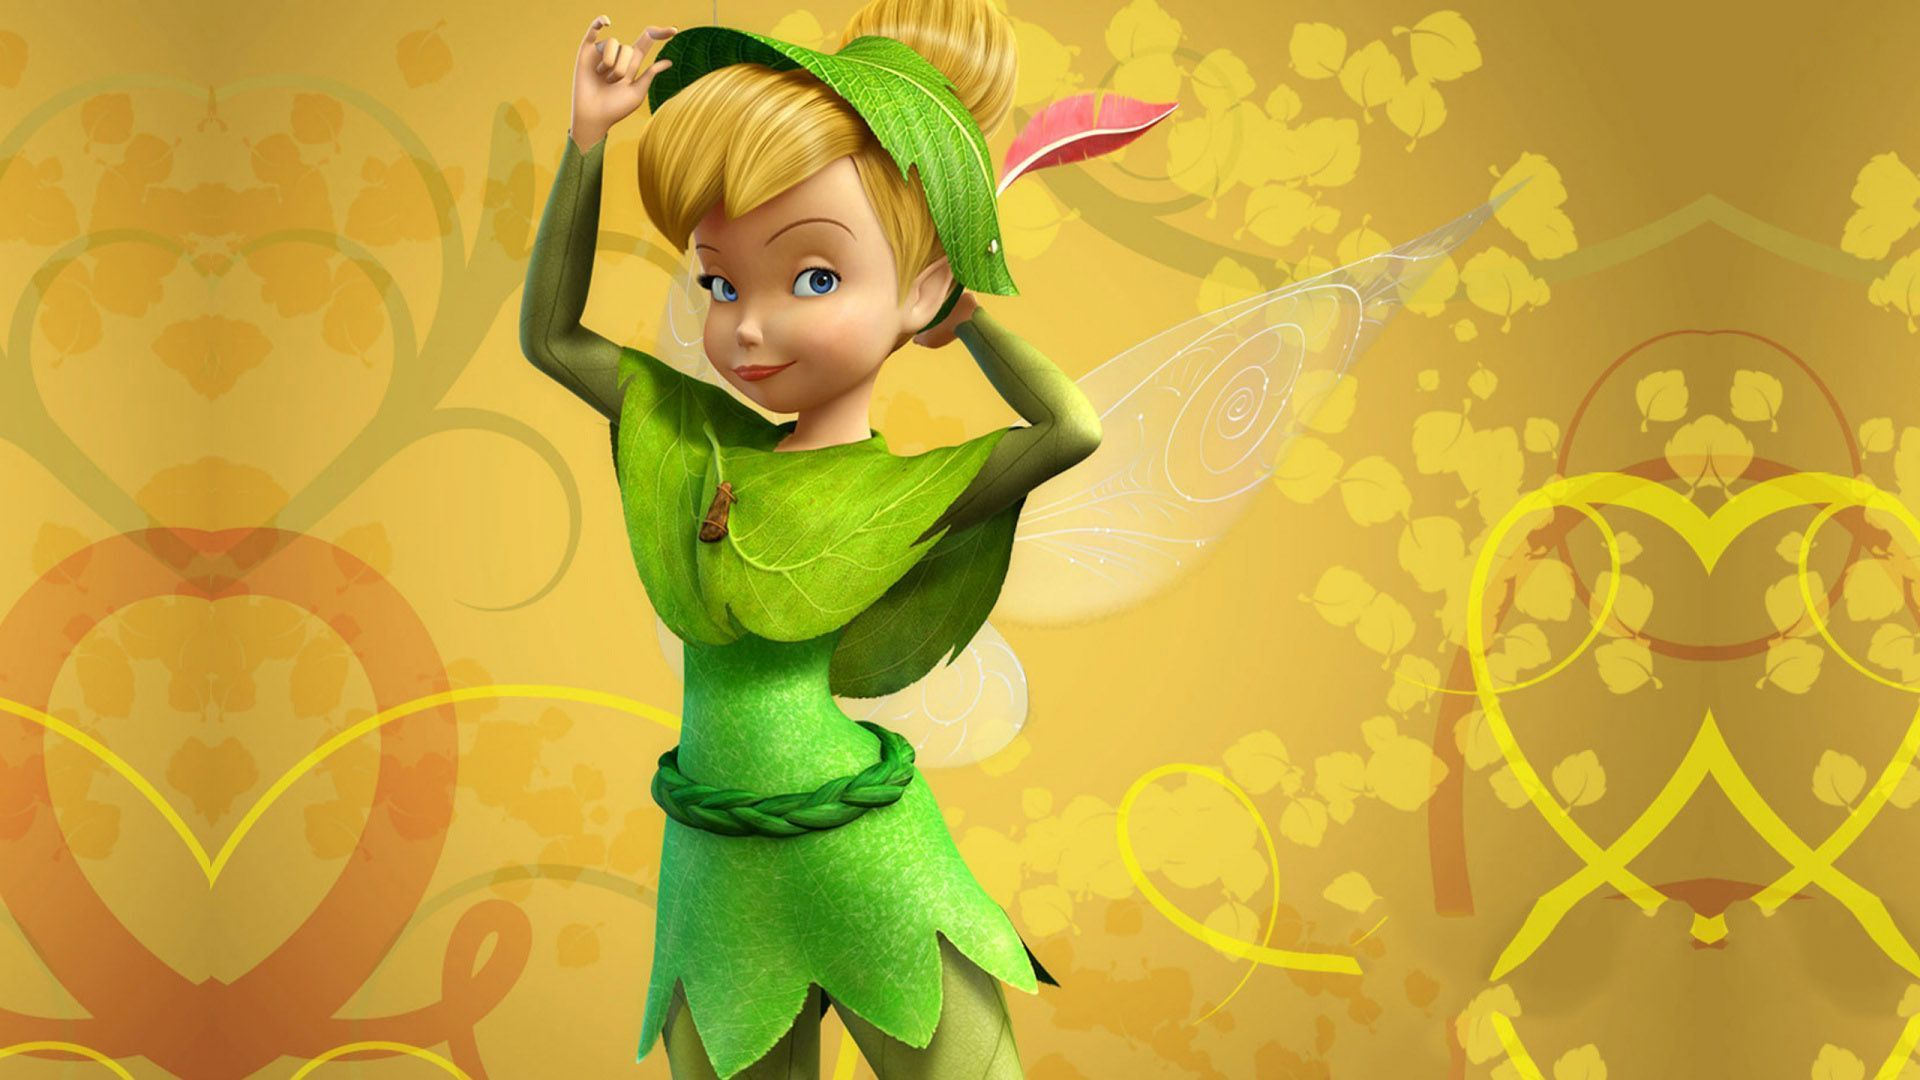 29 tinker bell hd wallpapers background images wallpaper abyss tinker bell hd wallpaper background image id523594 voltagebd Gallery